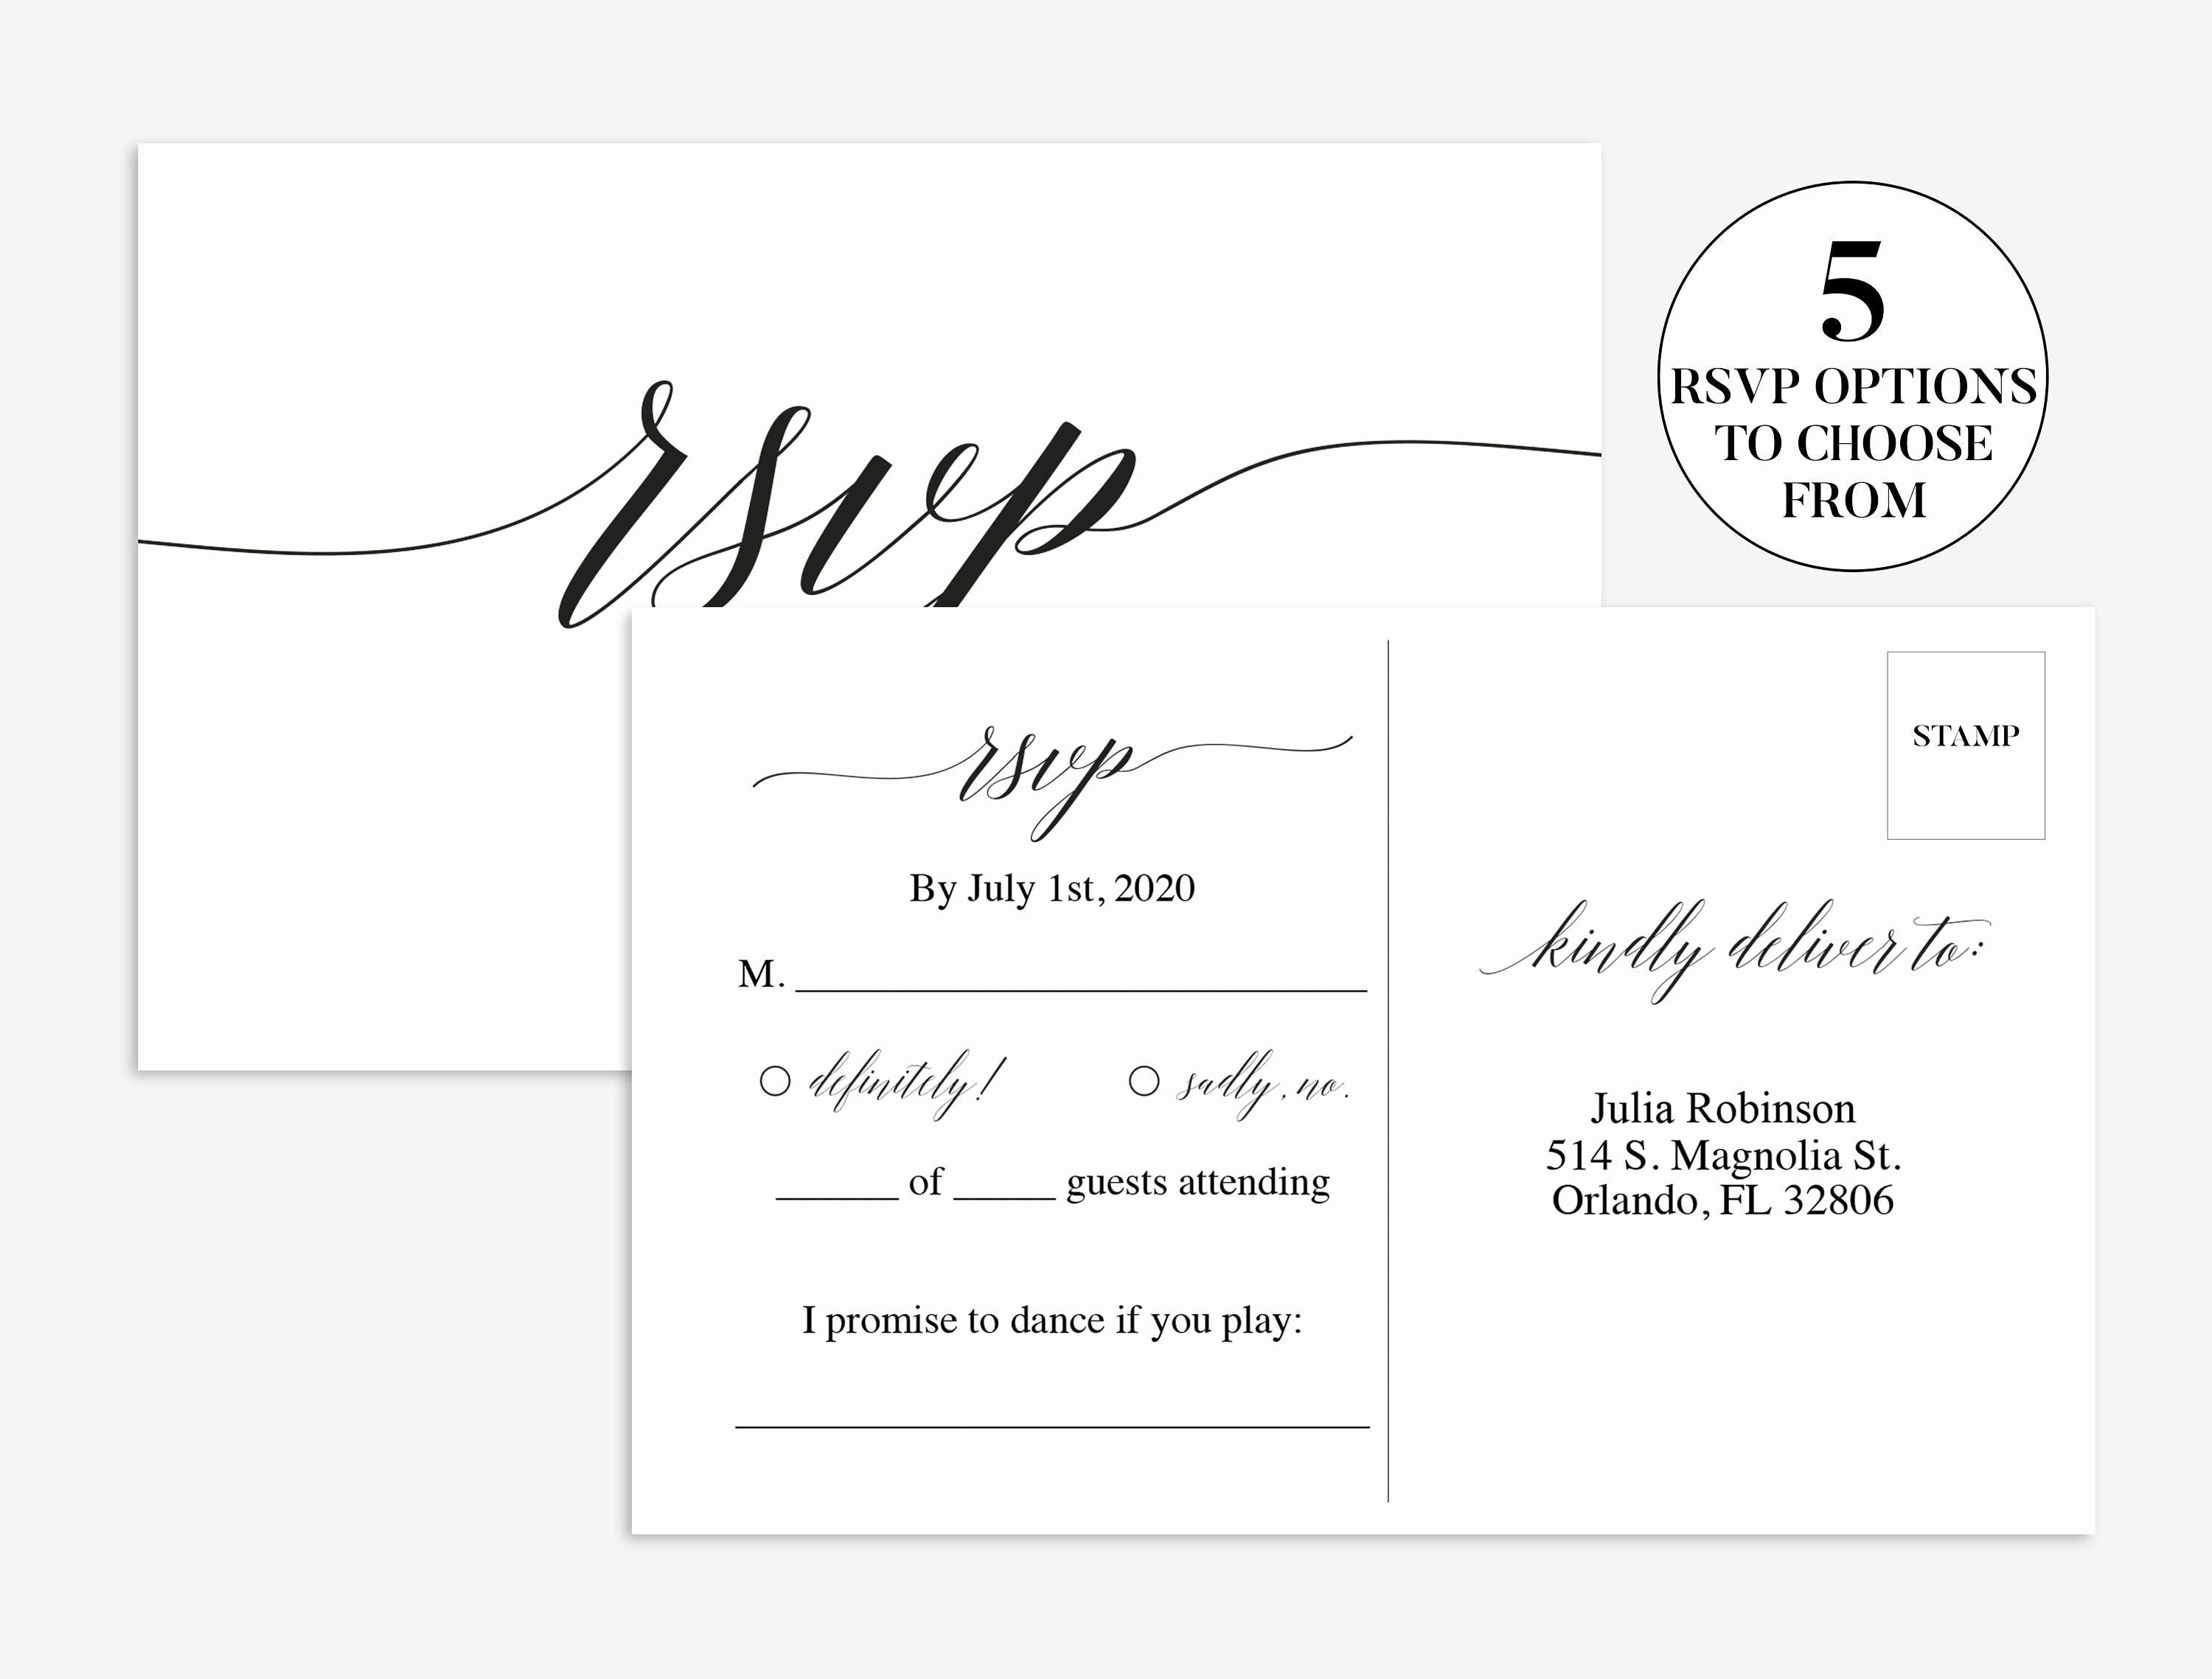 008 Fascinating Rsvp Postcard Template For Word Highest Quality Full